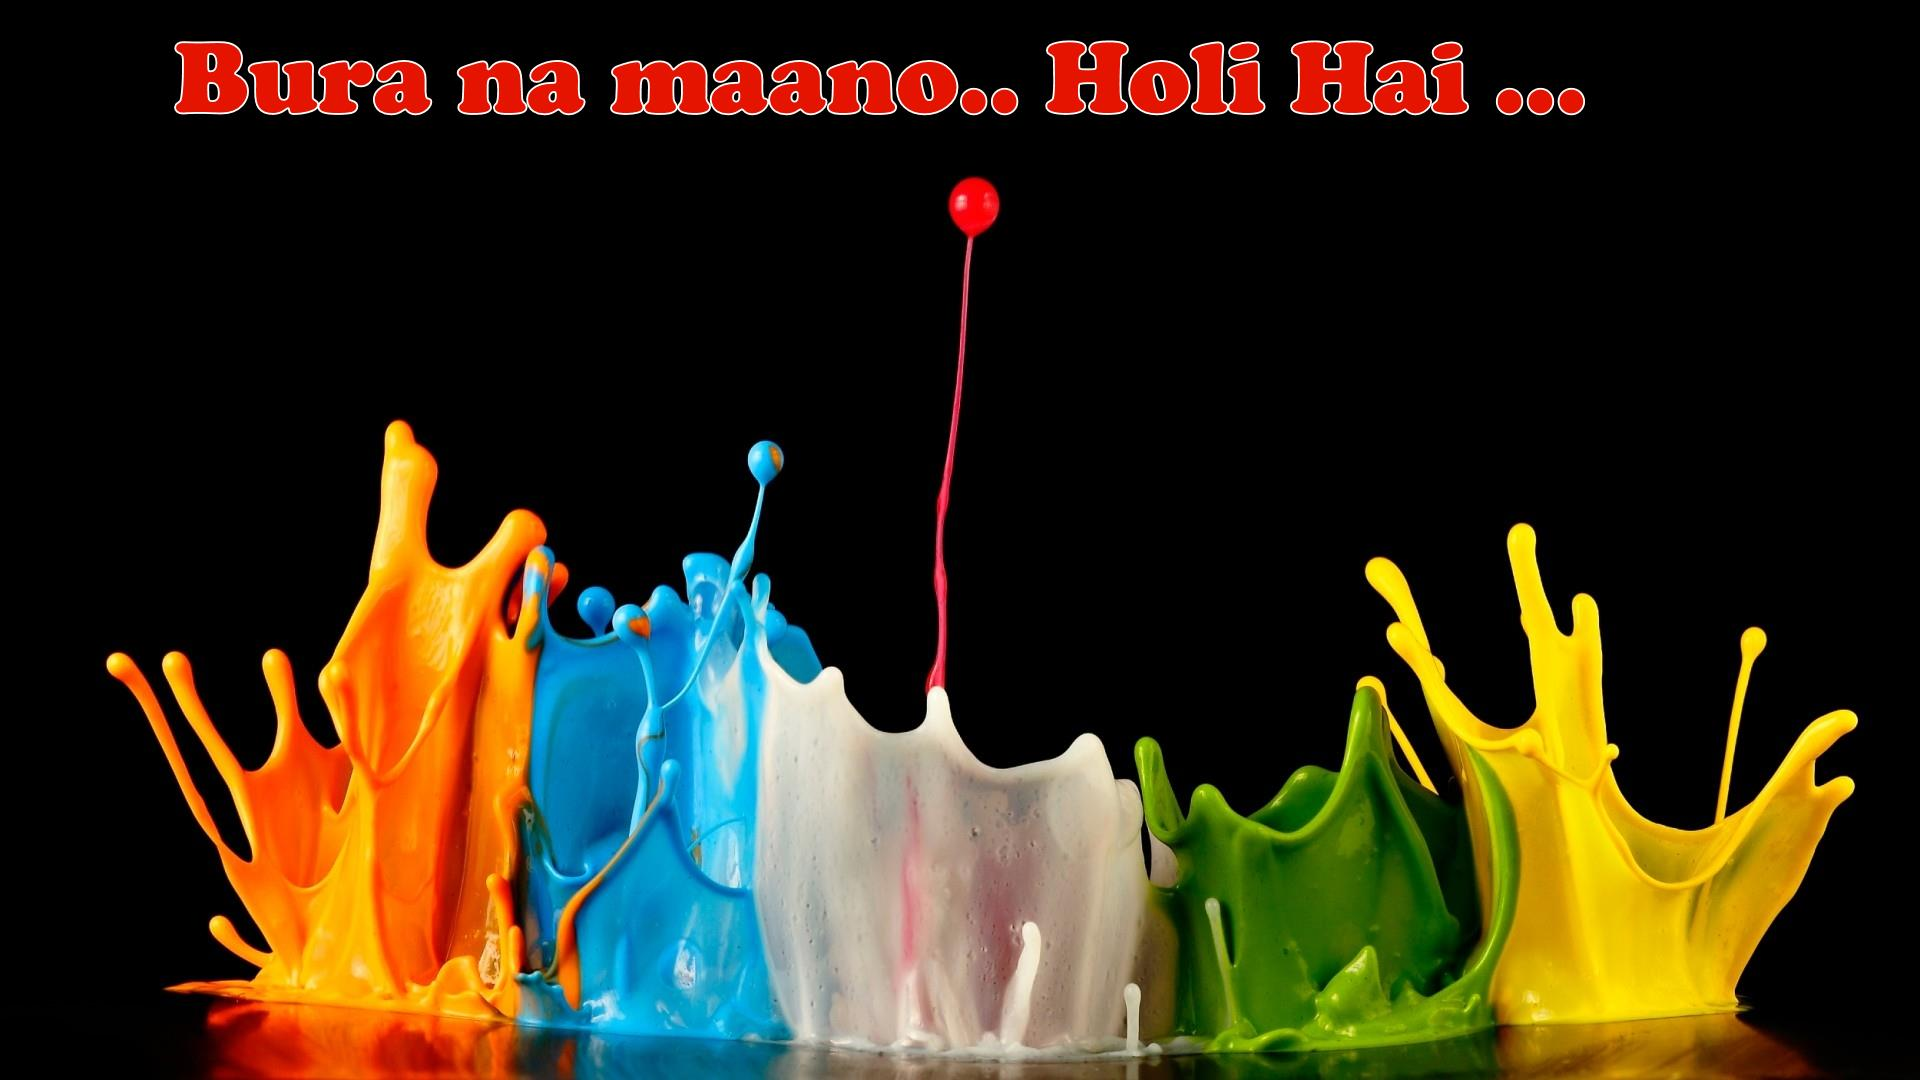 Bura na mano Holi Hain Wallpaper Download Free